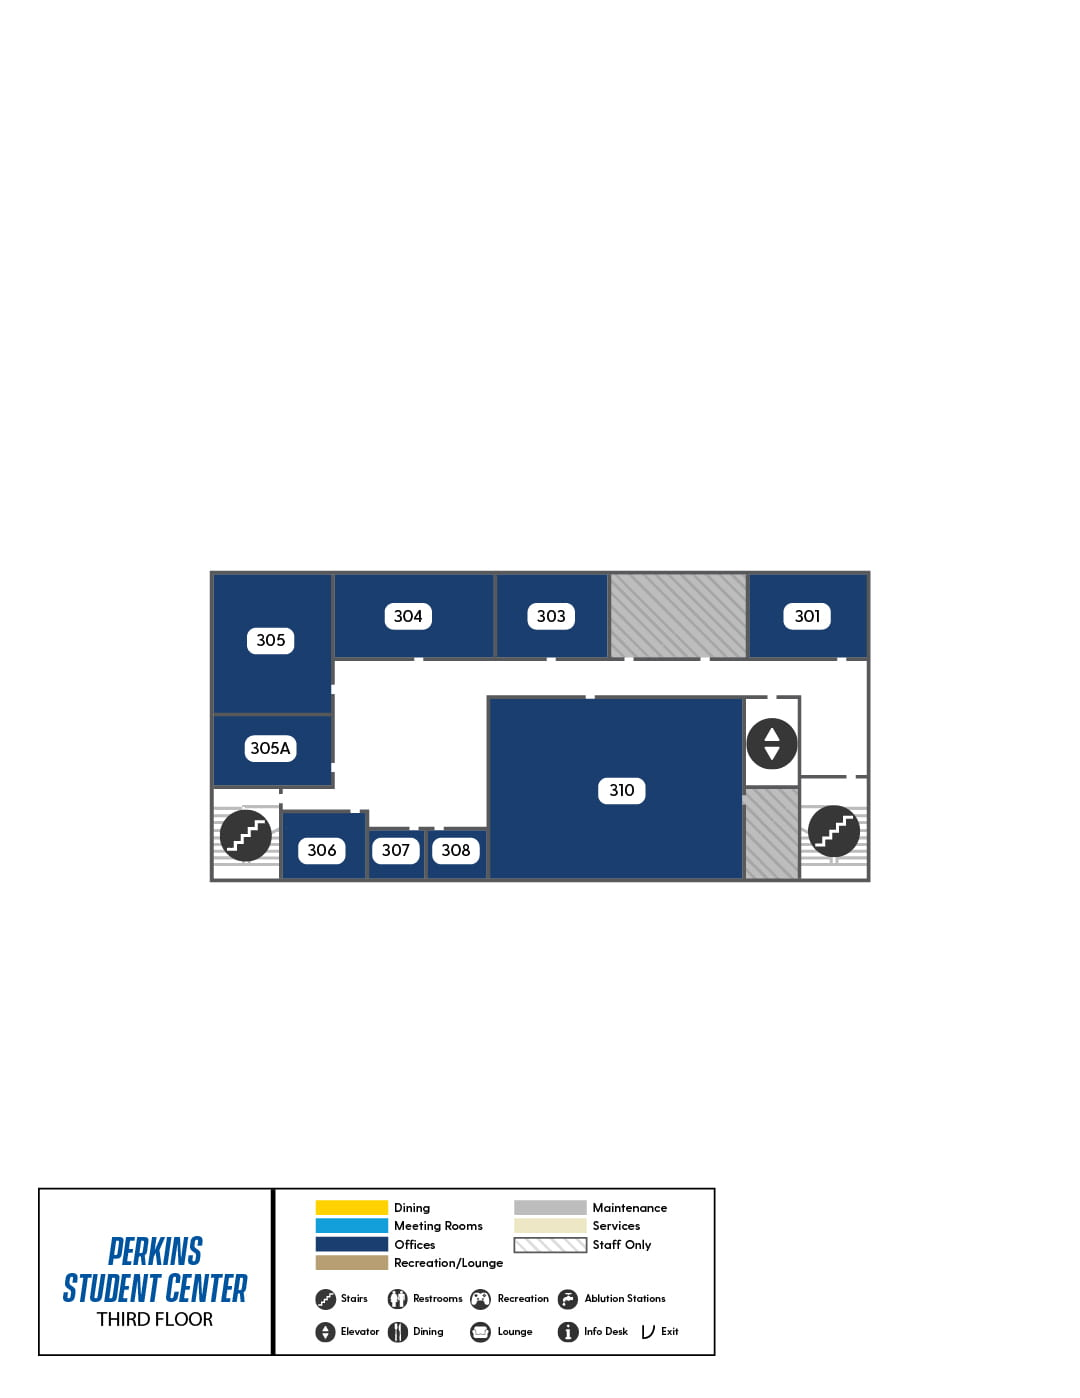 Perkins Third Floor map, showing multiple office spaces